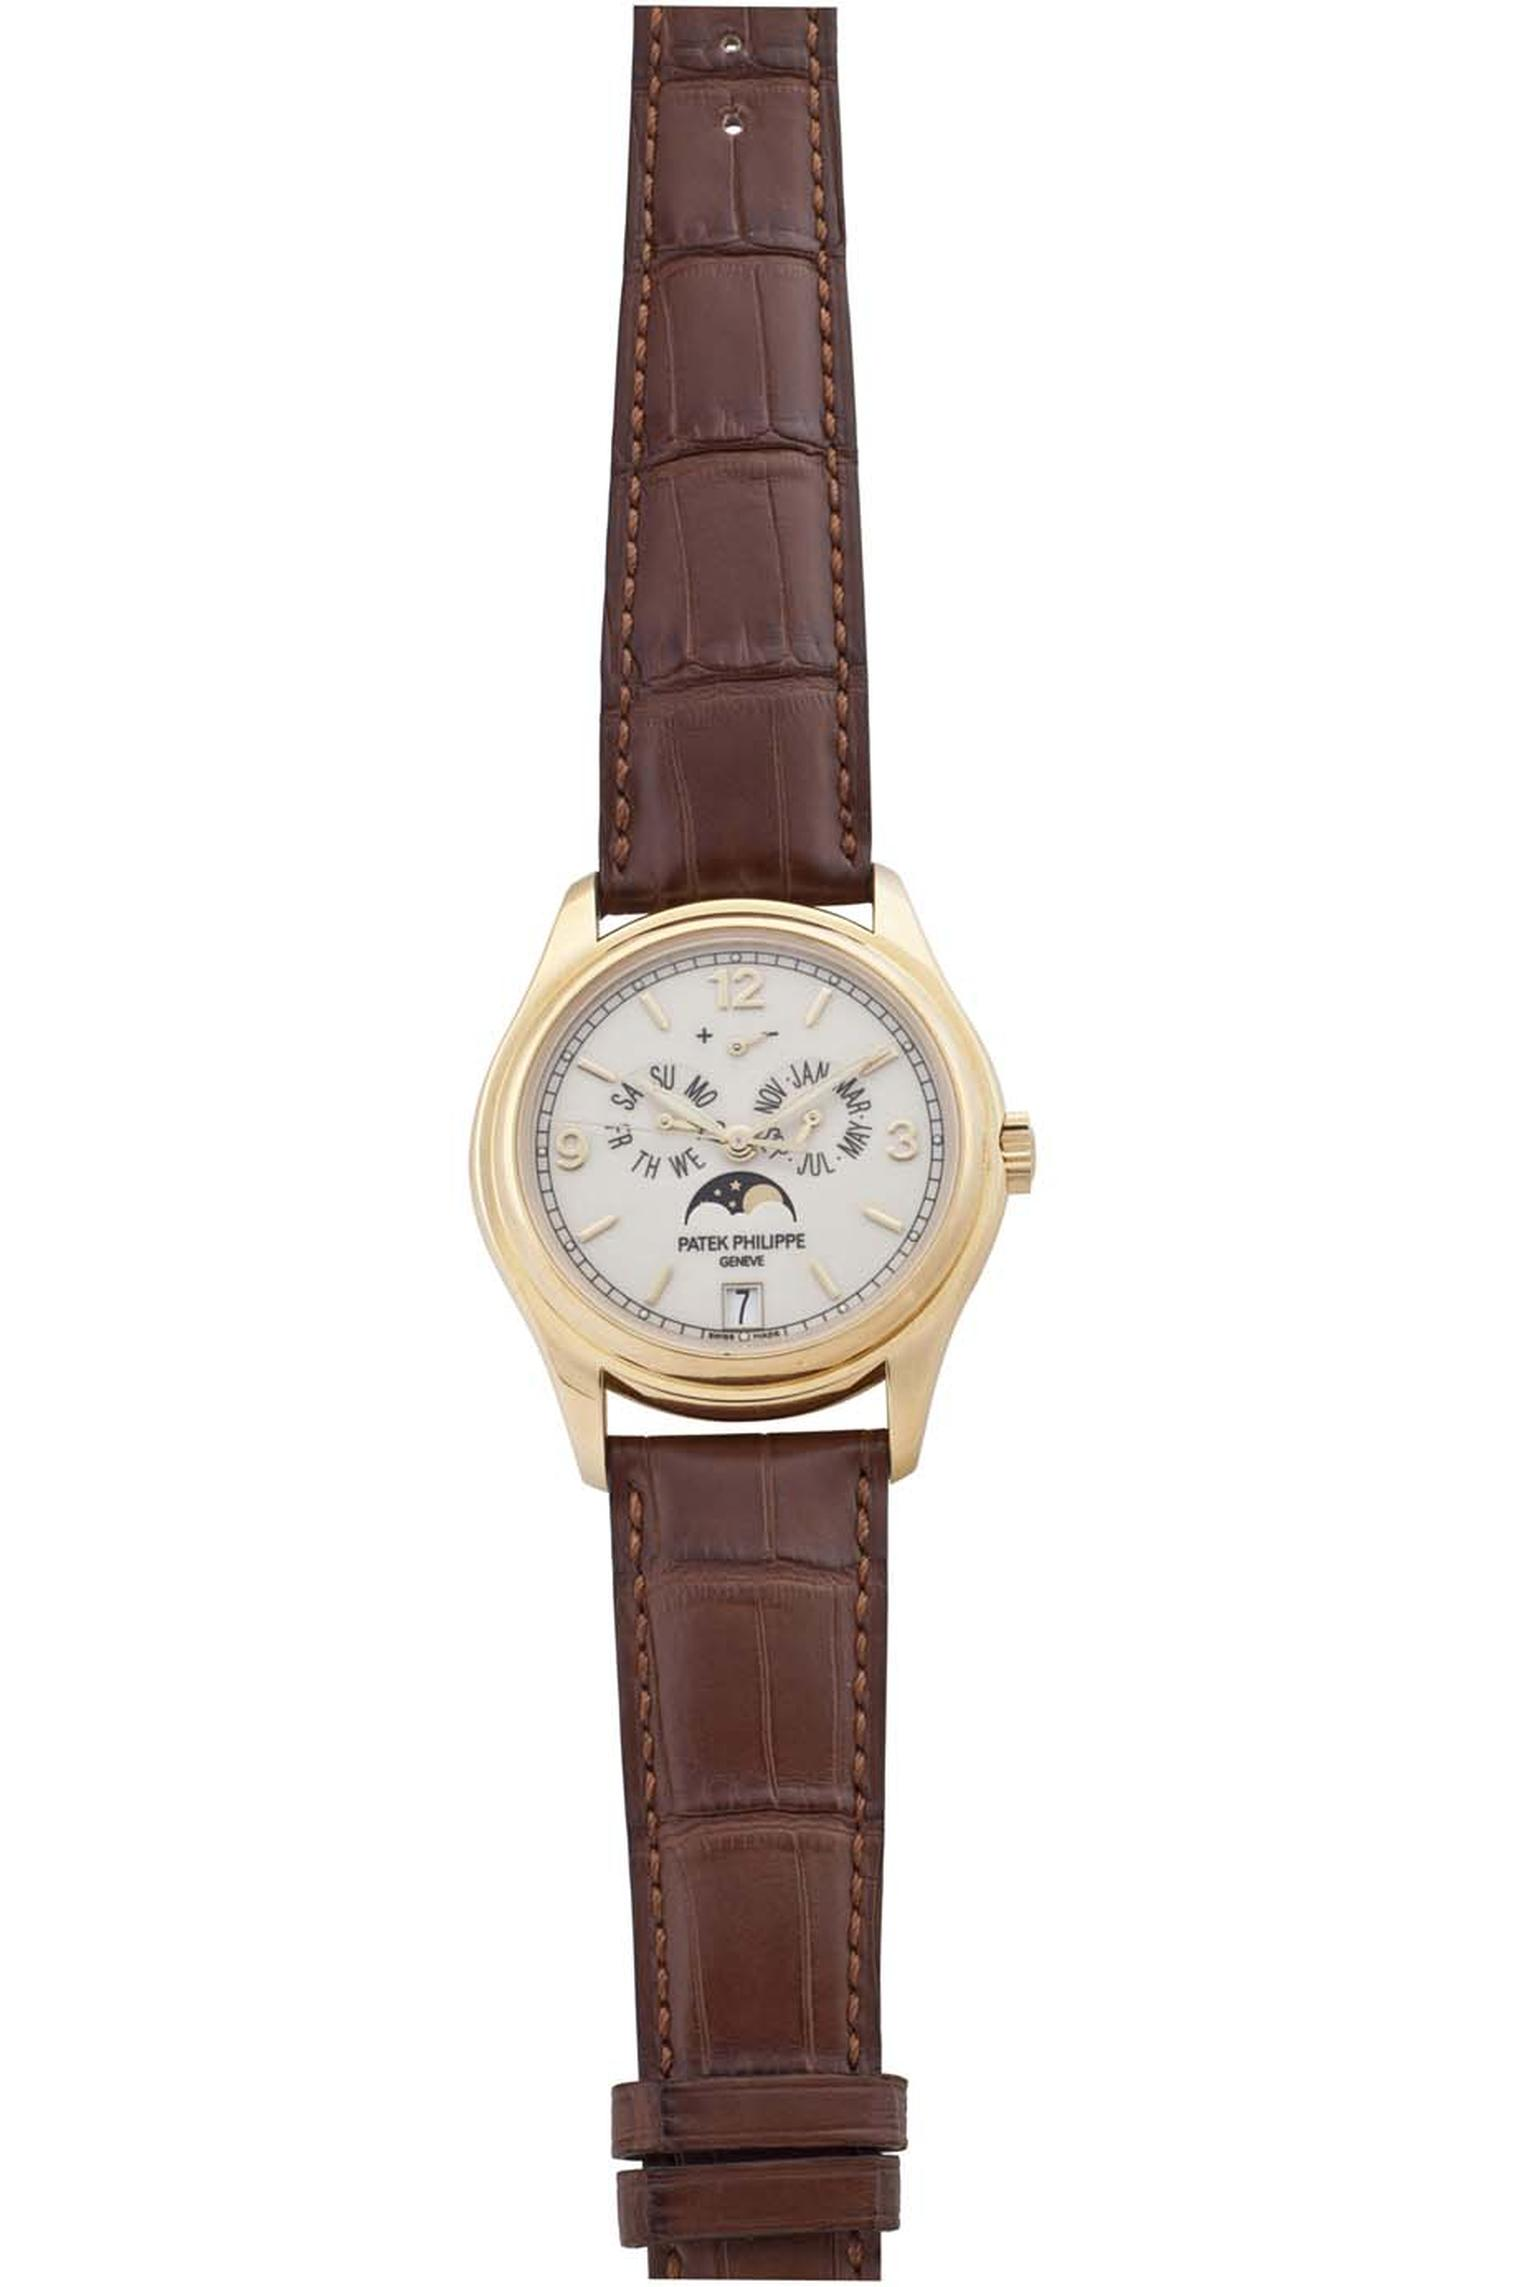 Christie's Watch Shop Patek Philippe yellow gold annual calendar watch ($33,000).